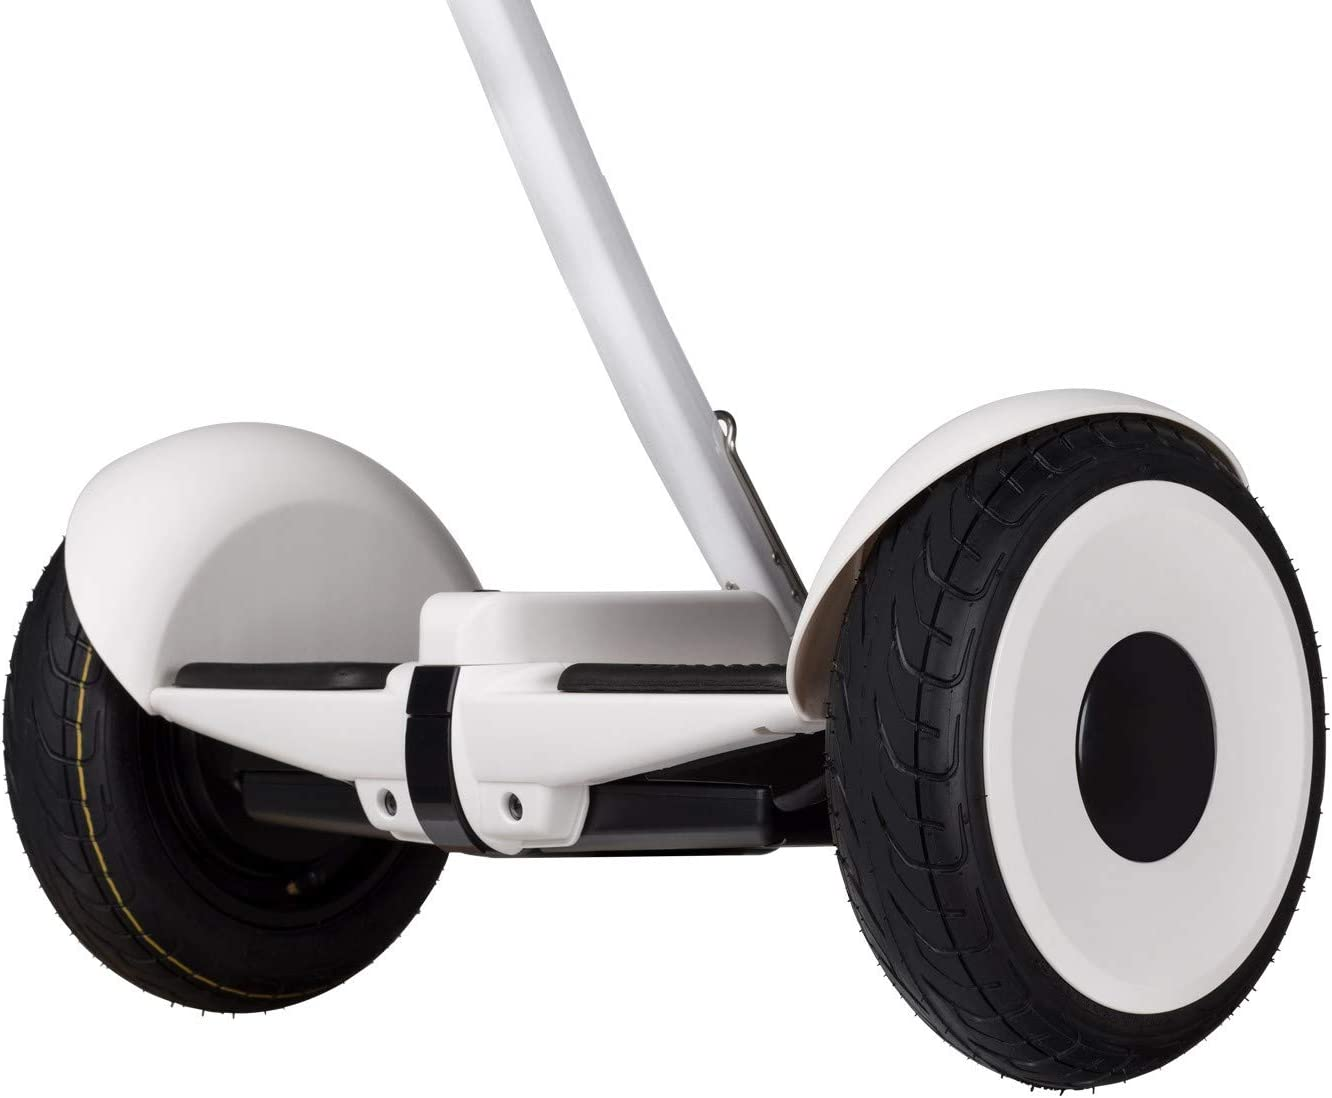 iwatBoard iWay Lite White Transporte Personal Scooter